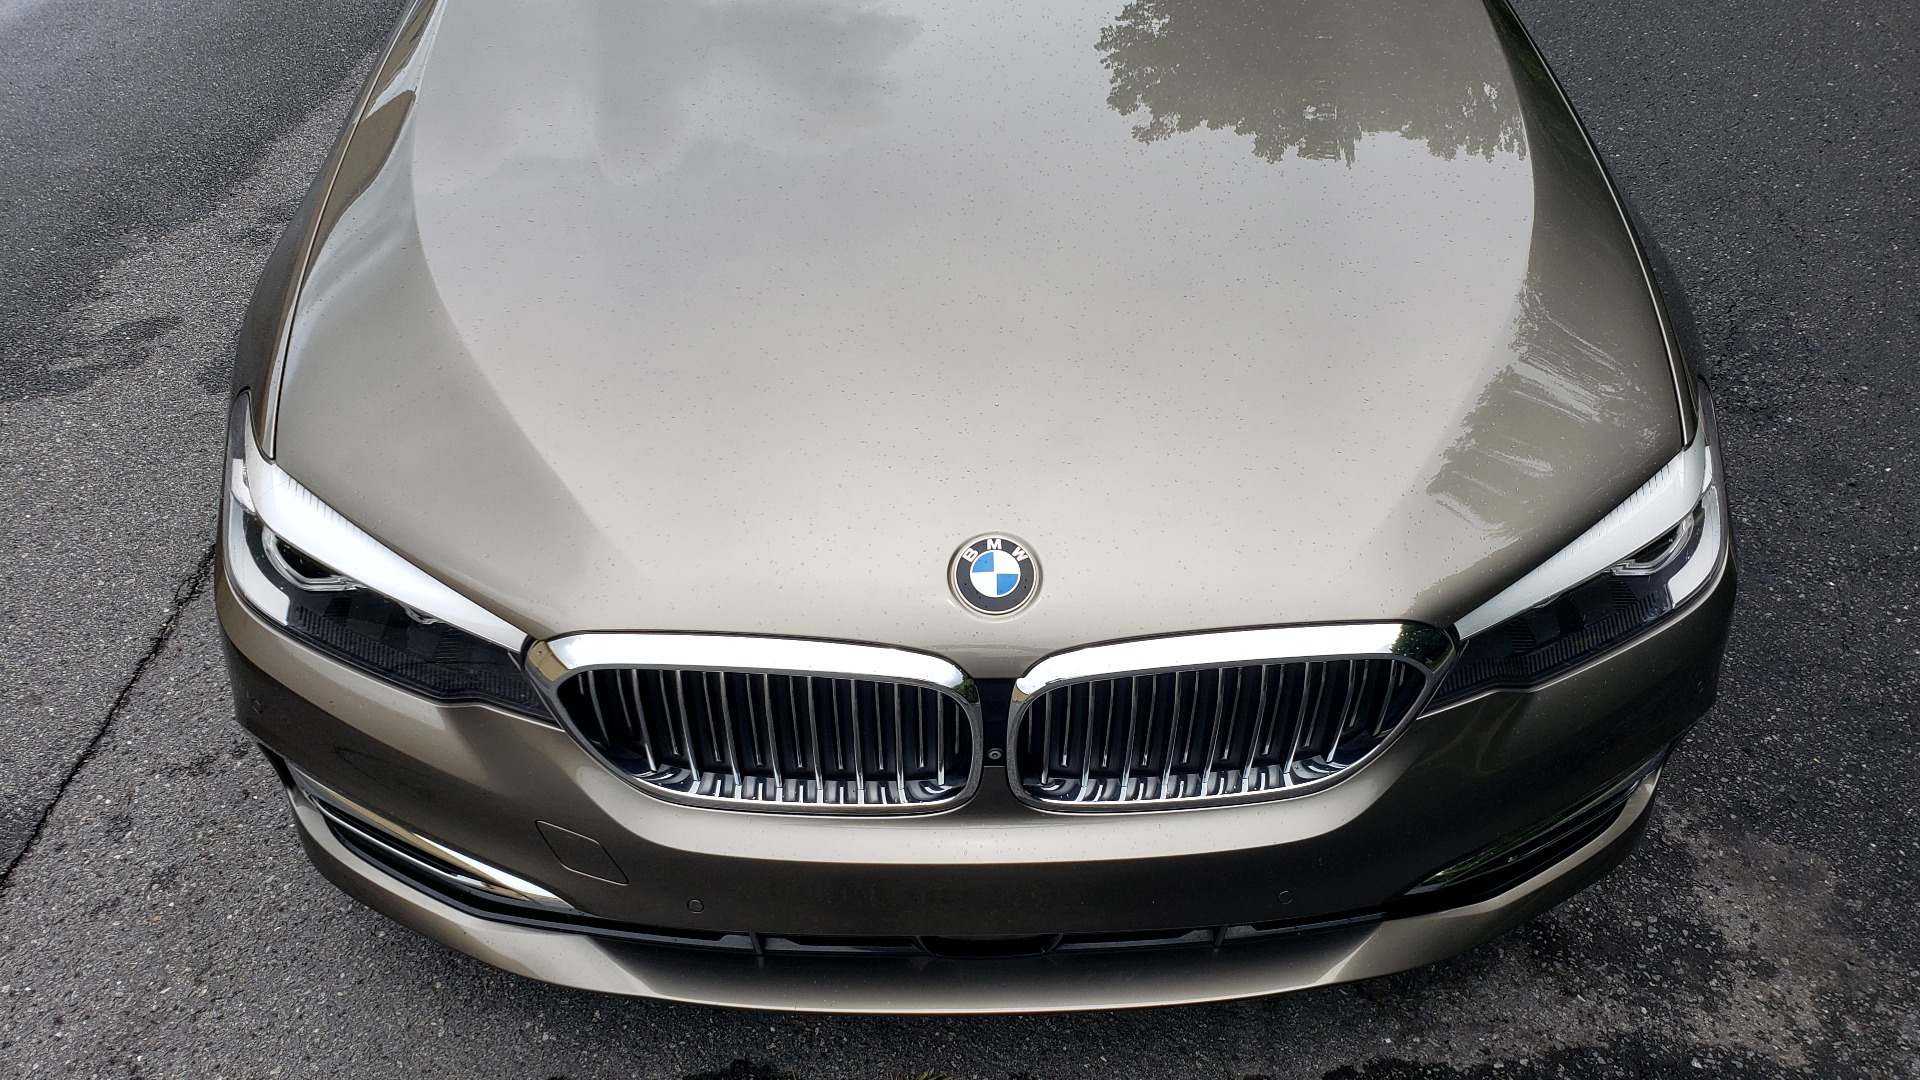 Used 2017 BMW 5 SERIES 530I PREMIUM / NAV / SUNROOF / DRVR ASST PLUS II / LUXURY for sale Sold at Formula Imports in Charlotte NC 28227 18